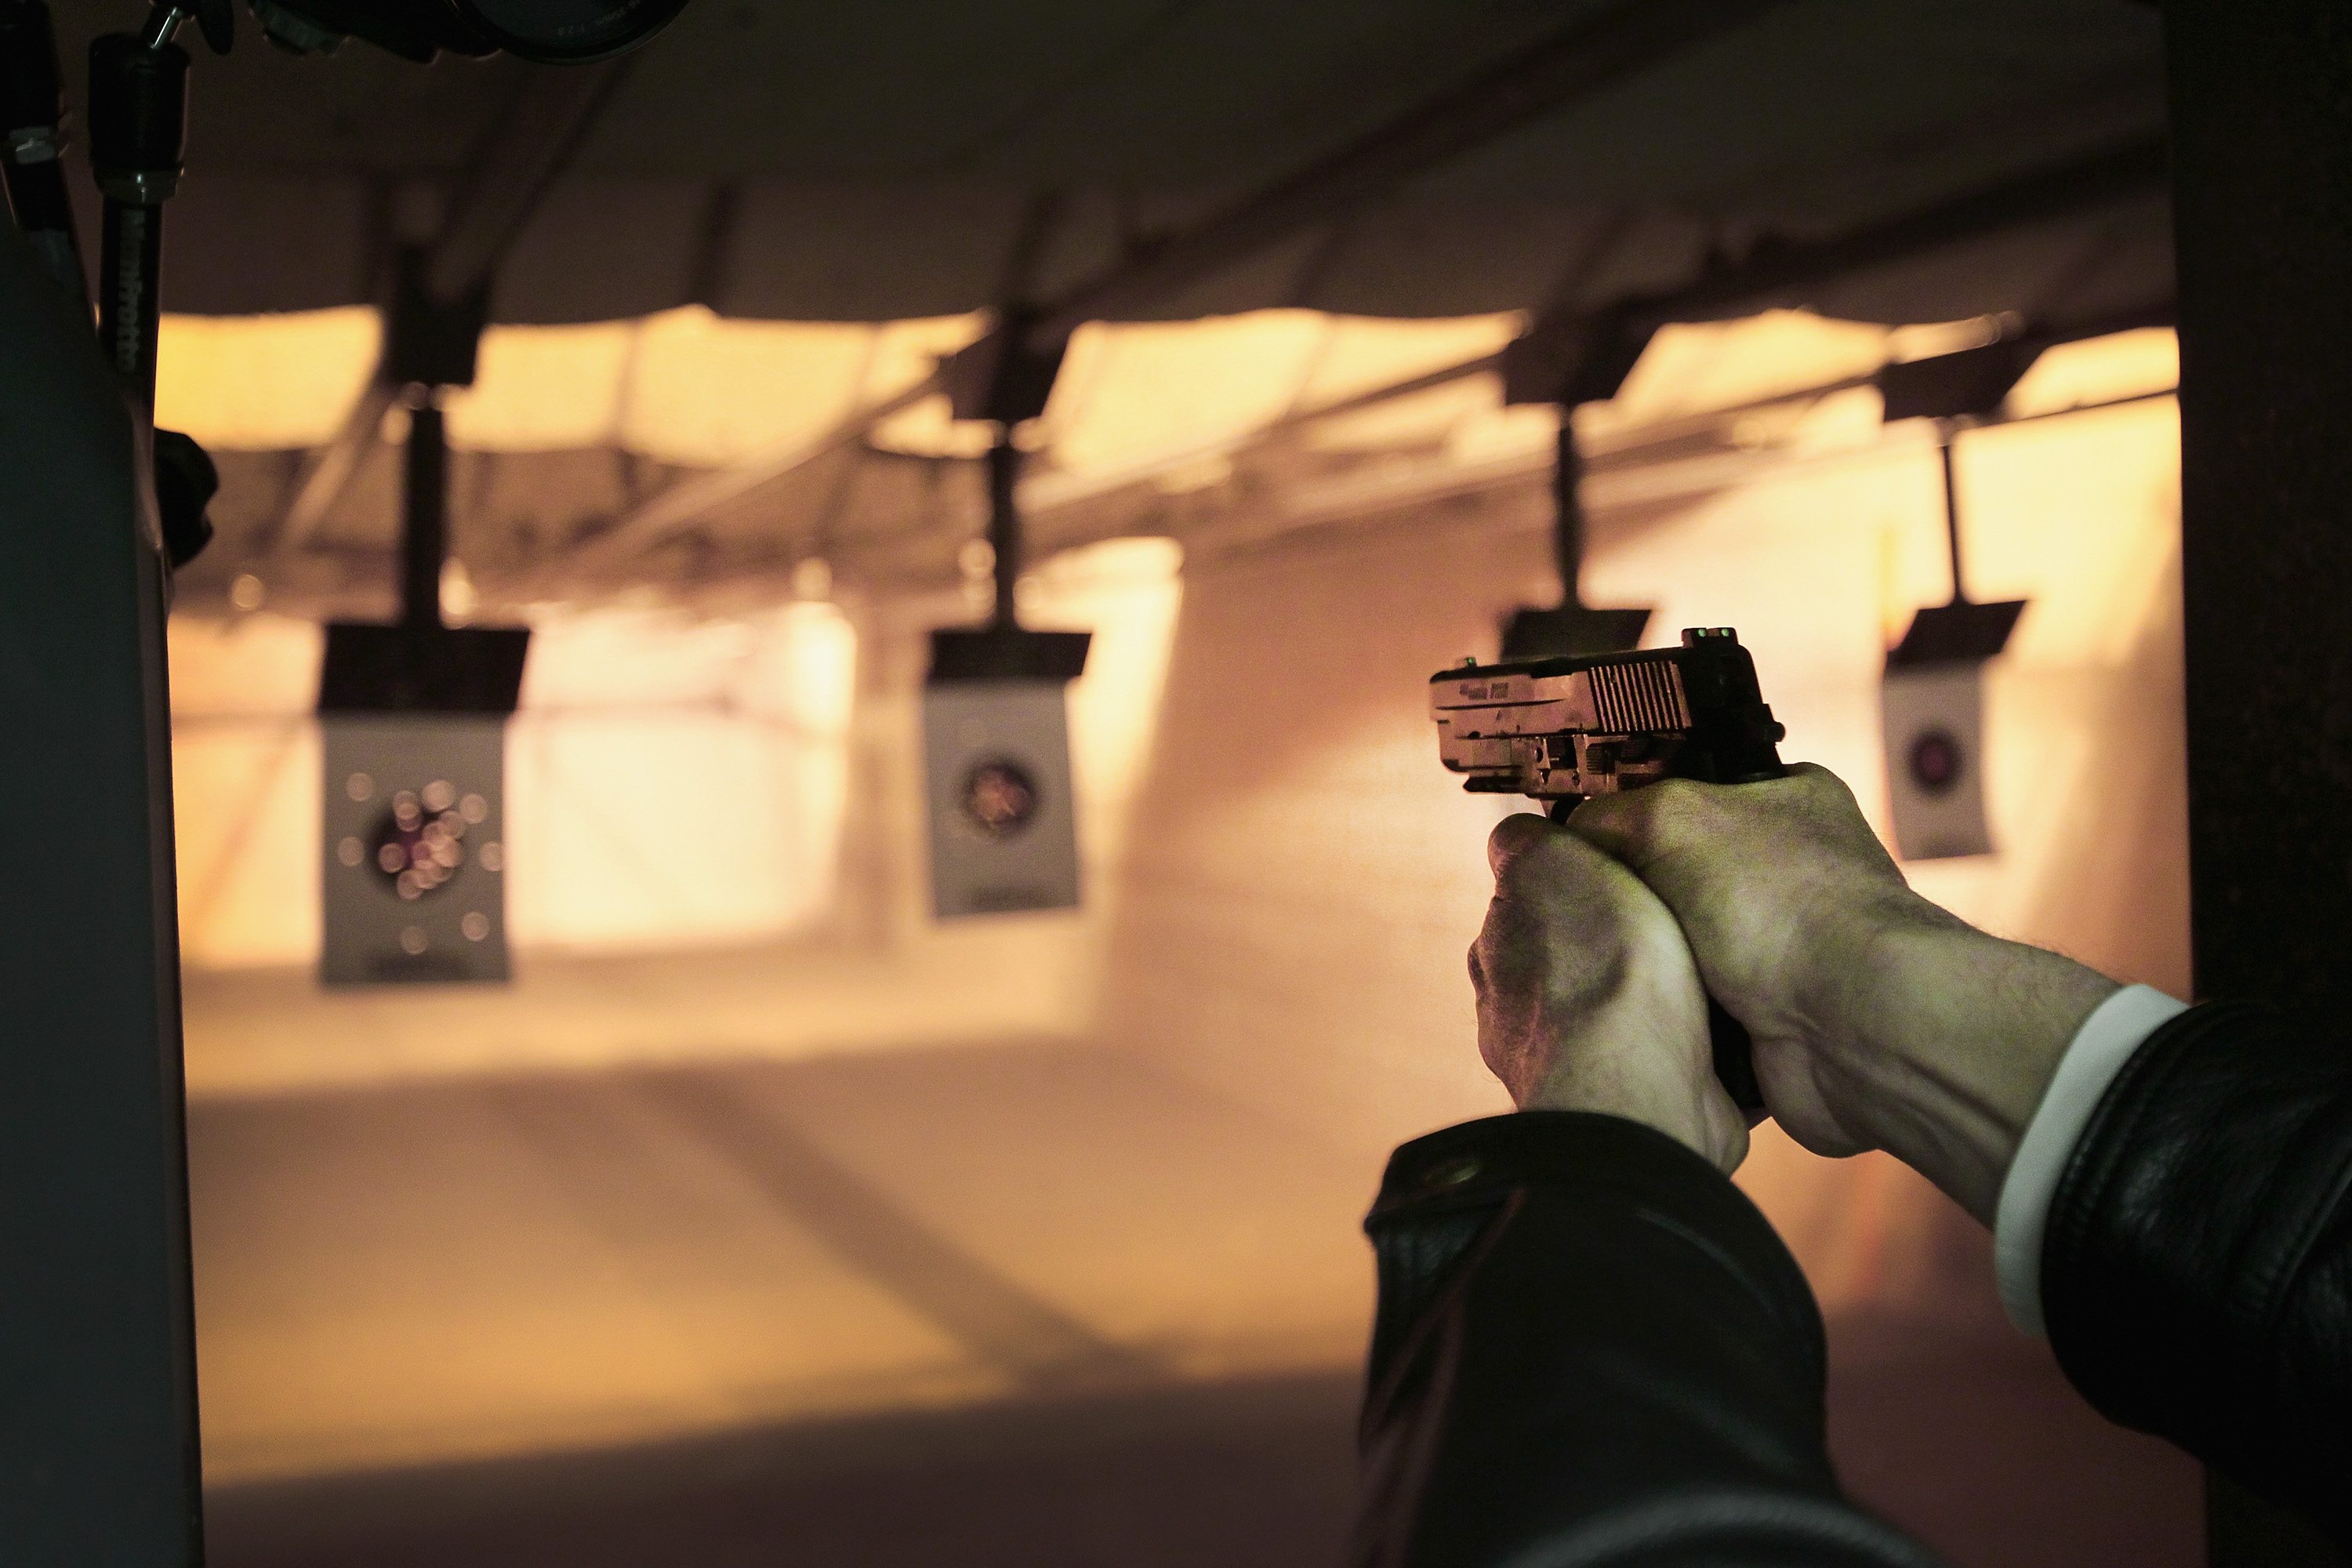 a gun owner sights a gun at a gun range